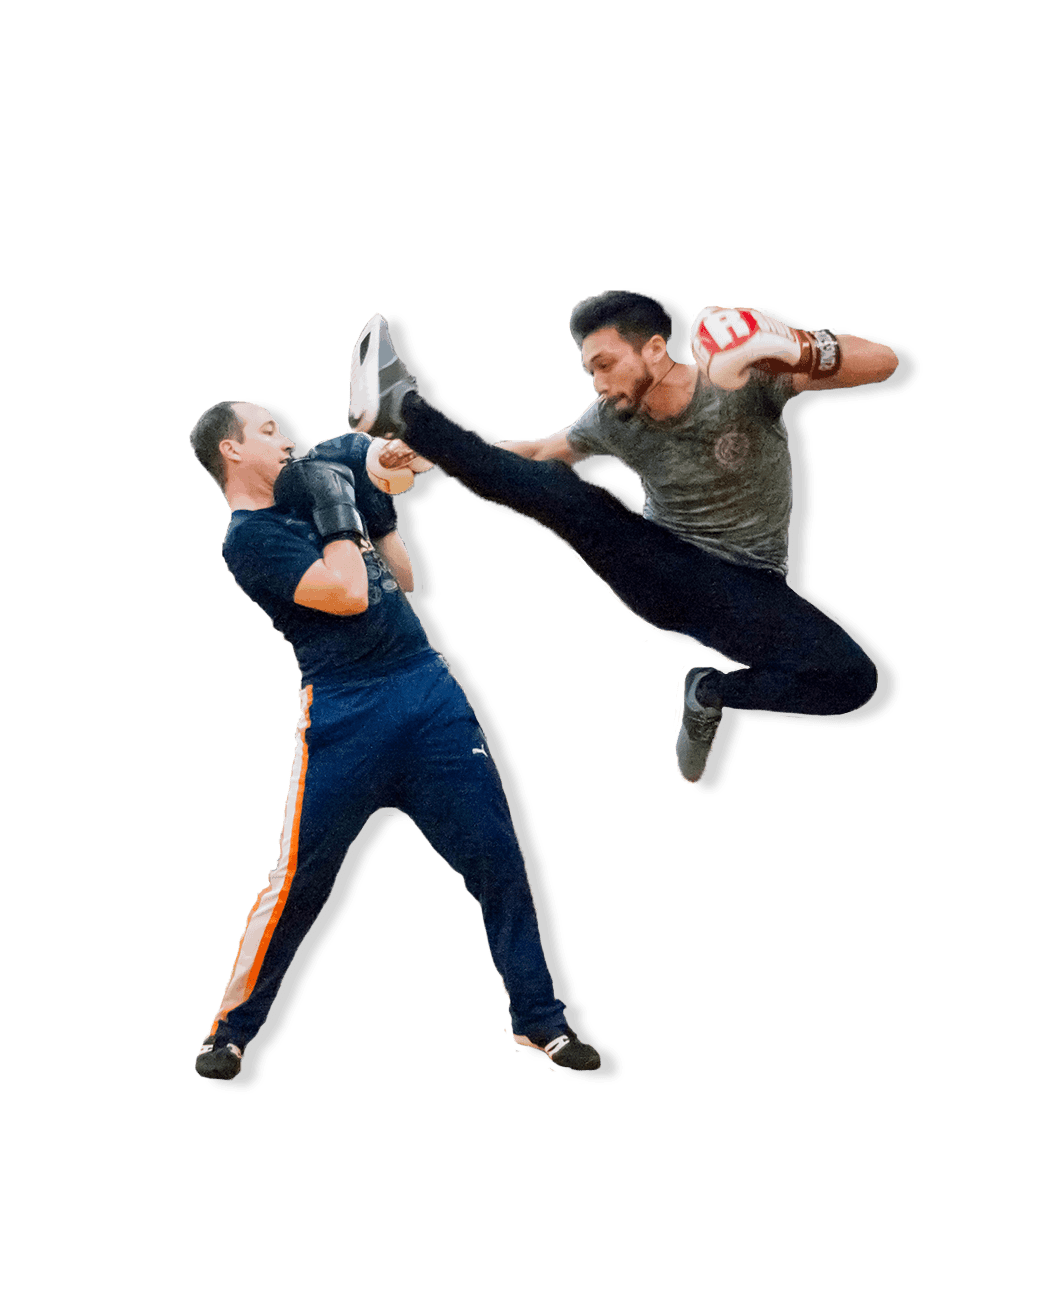 savate classes or french kickboxing classes in Seattle